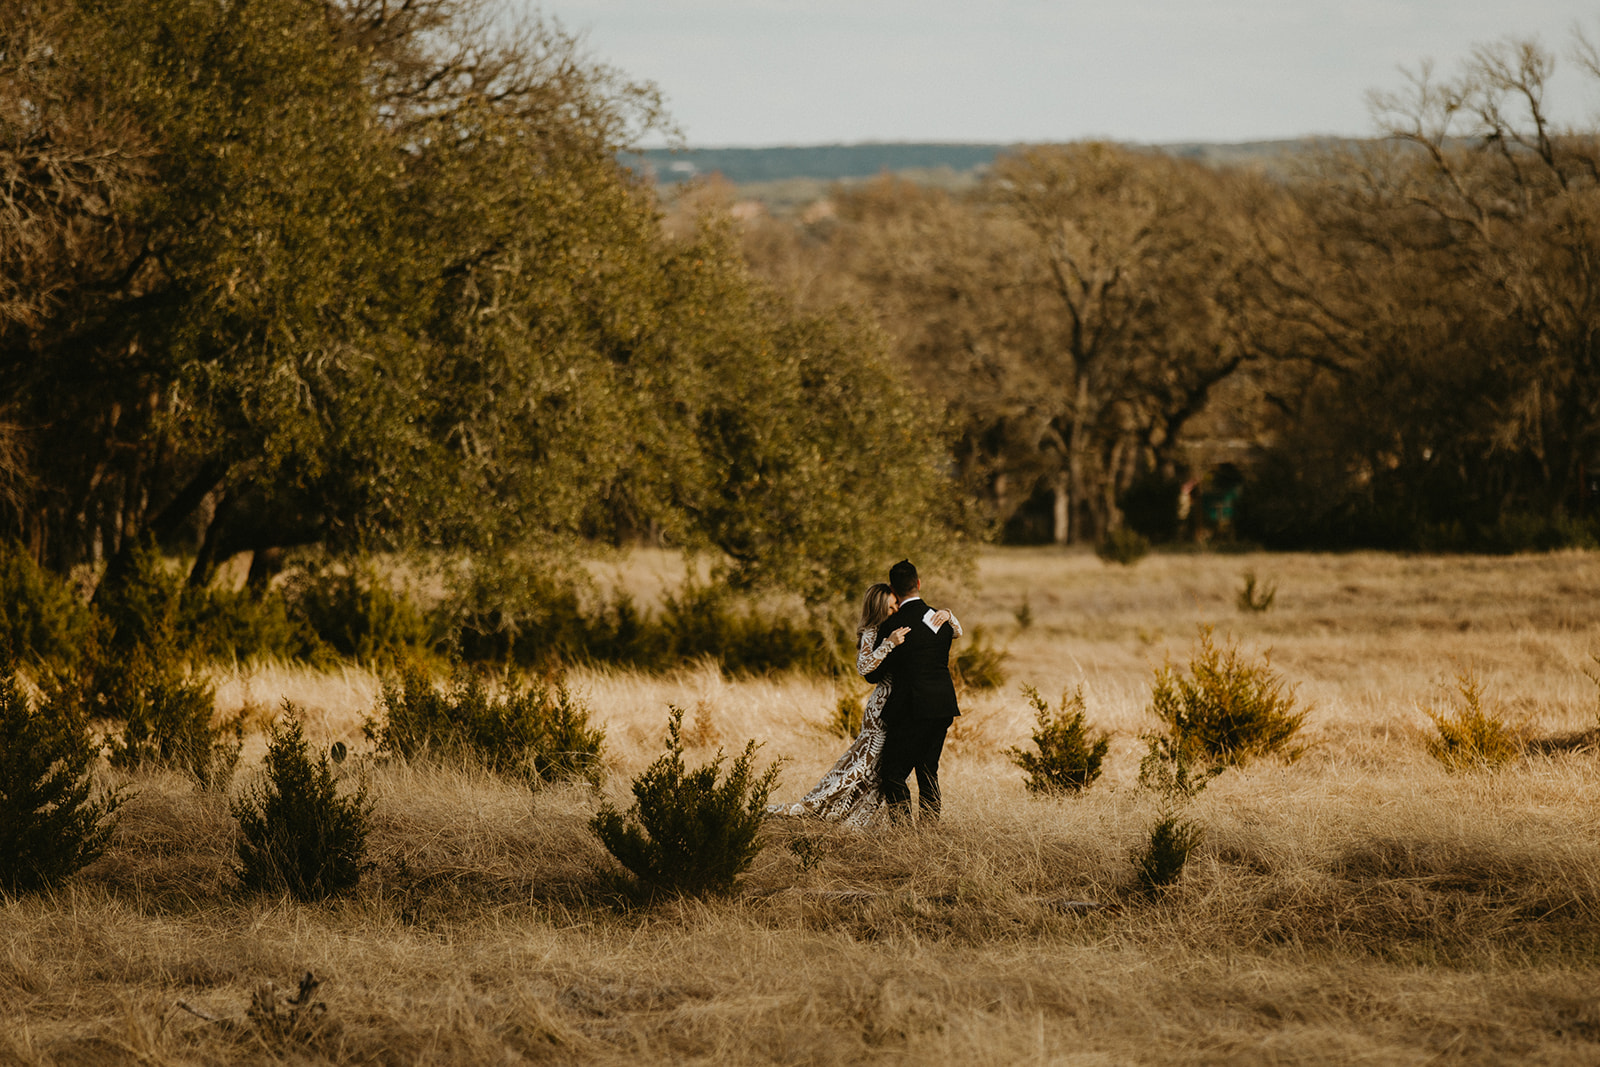 Epoch Co+ | Bride + Groom First Look | Austin Wedding Venue Prospect House | Private Vow Exchange + Adventure + Country + Outdoors + Moody | Austin Wedding Photographer Century Tree Productions